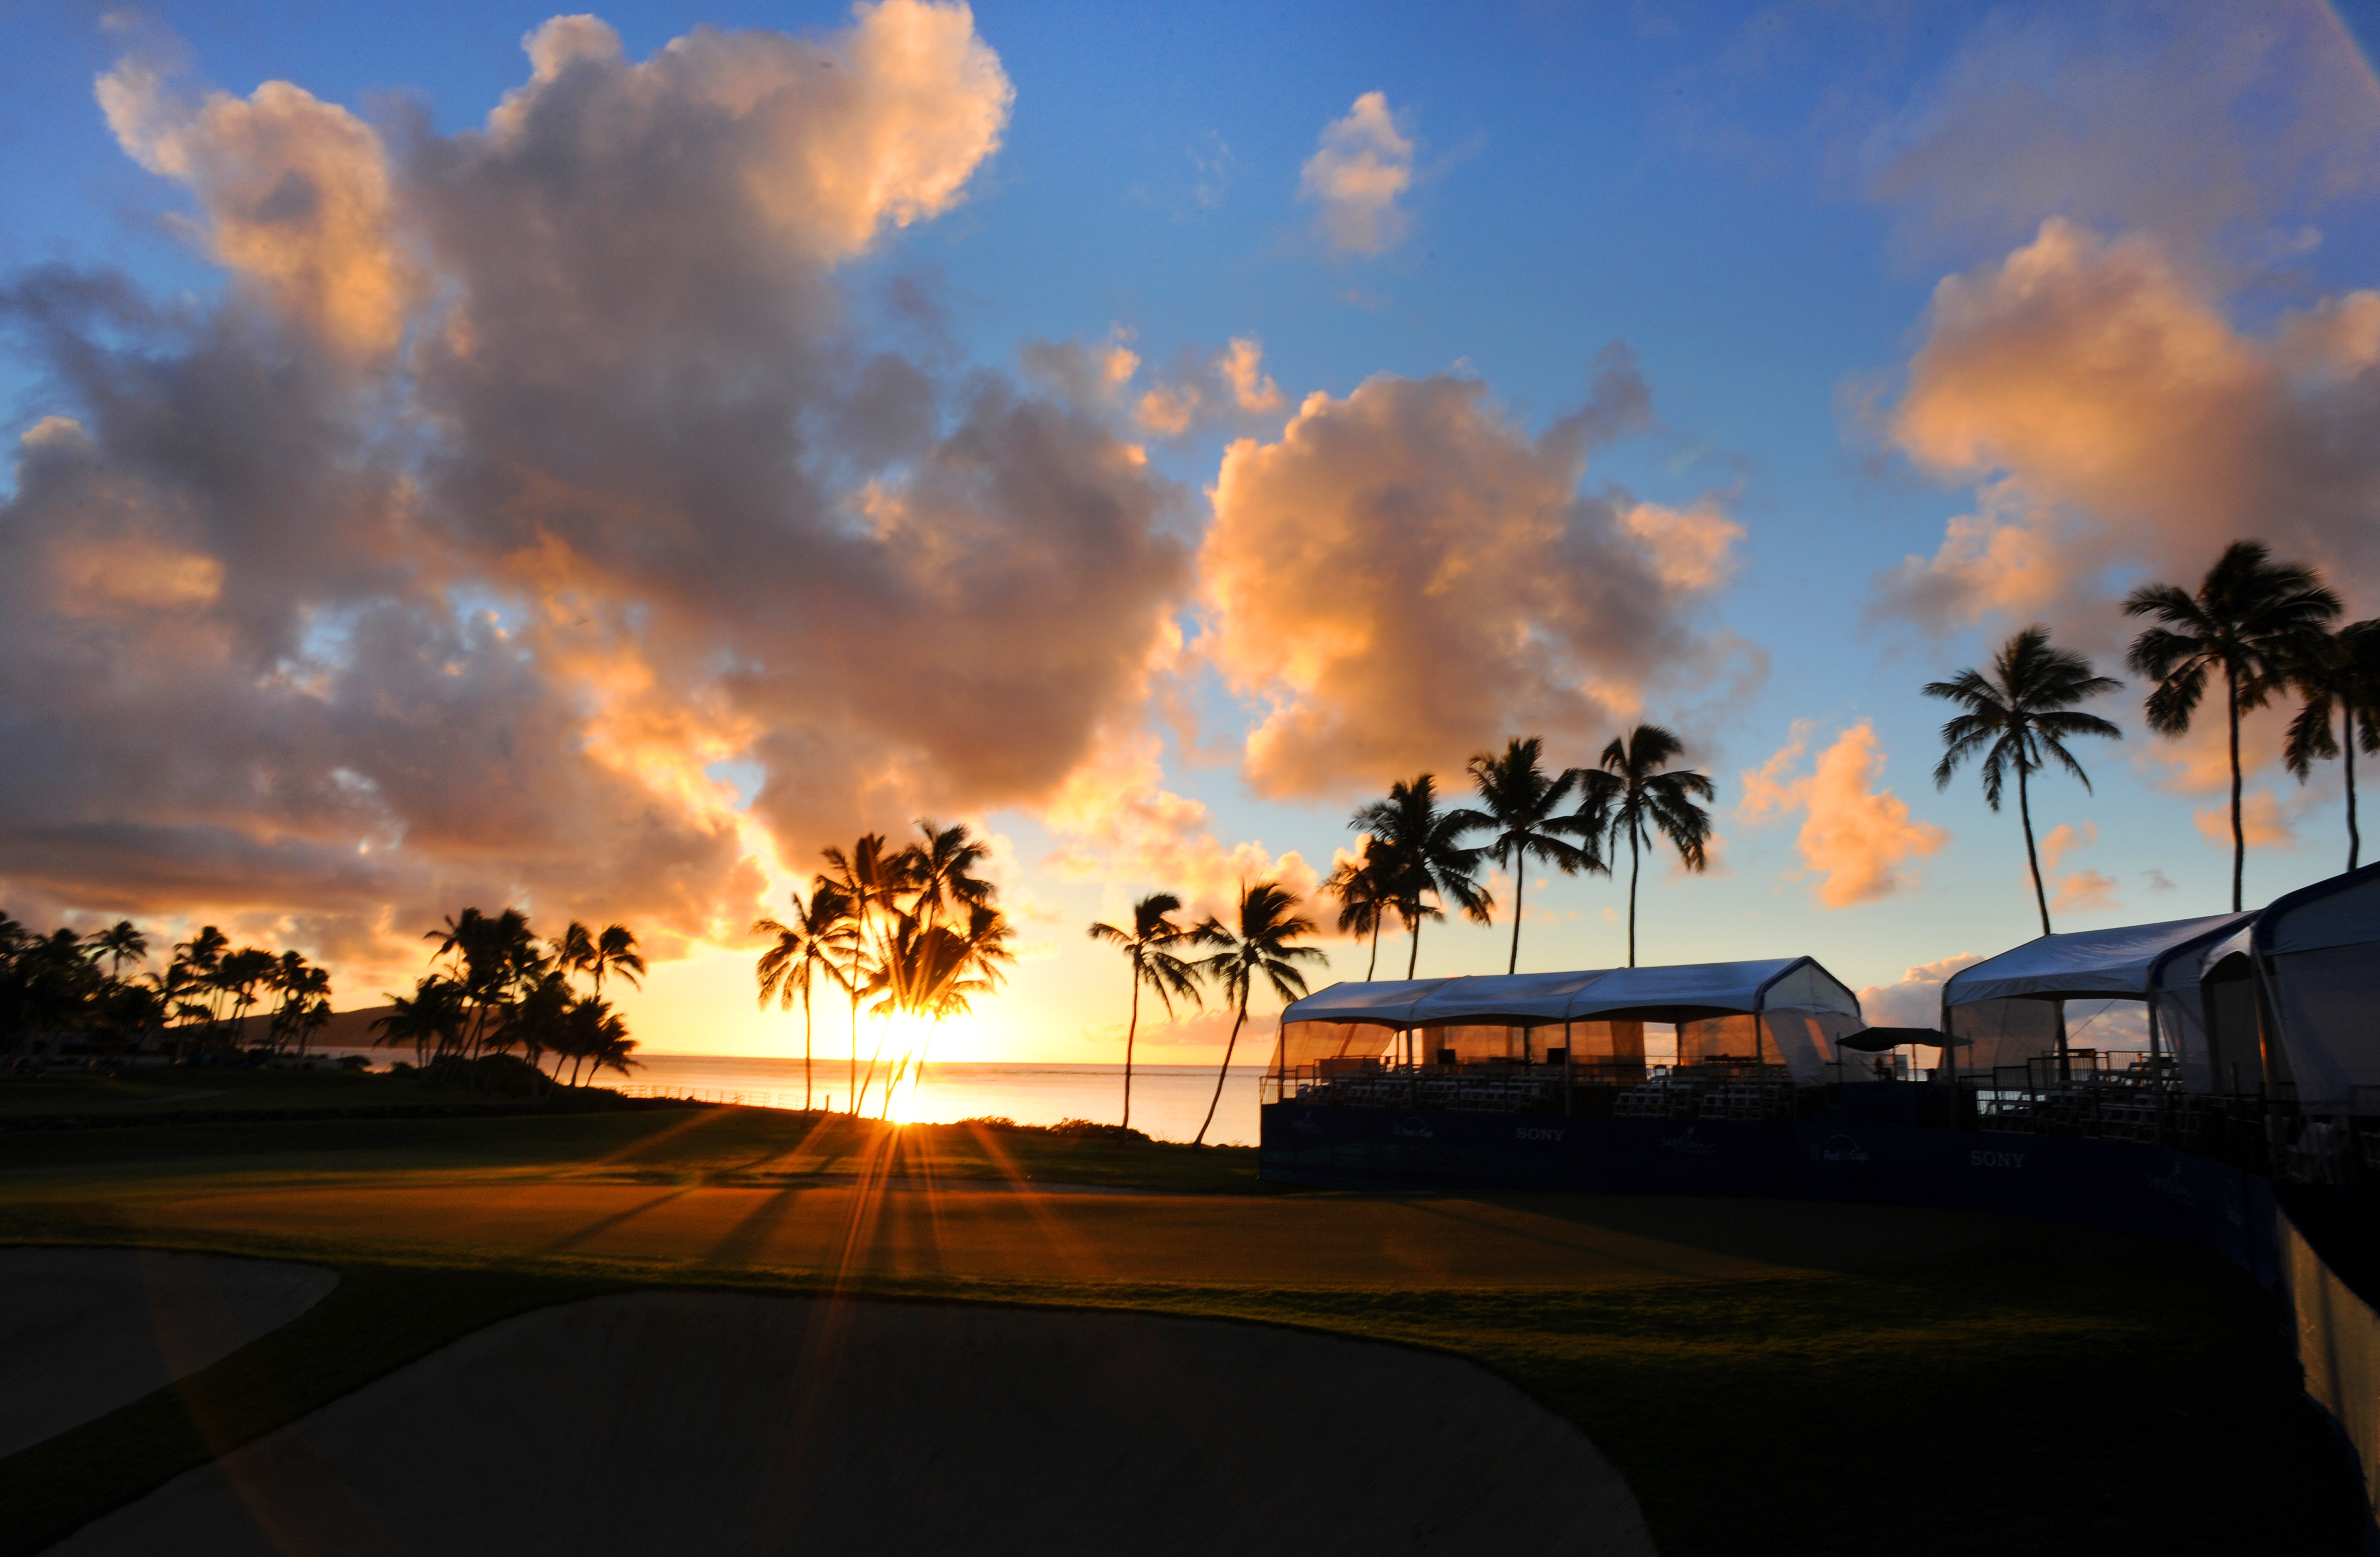 A course scenic shot at sunrise on the 17th hole during the first round of the Sony Open in Hawaii at Waialae Country Club on January 9, 2014 in Honolulu, Hawaii.